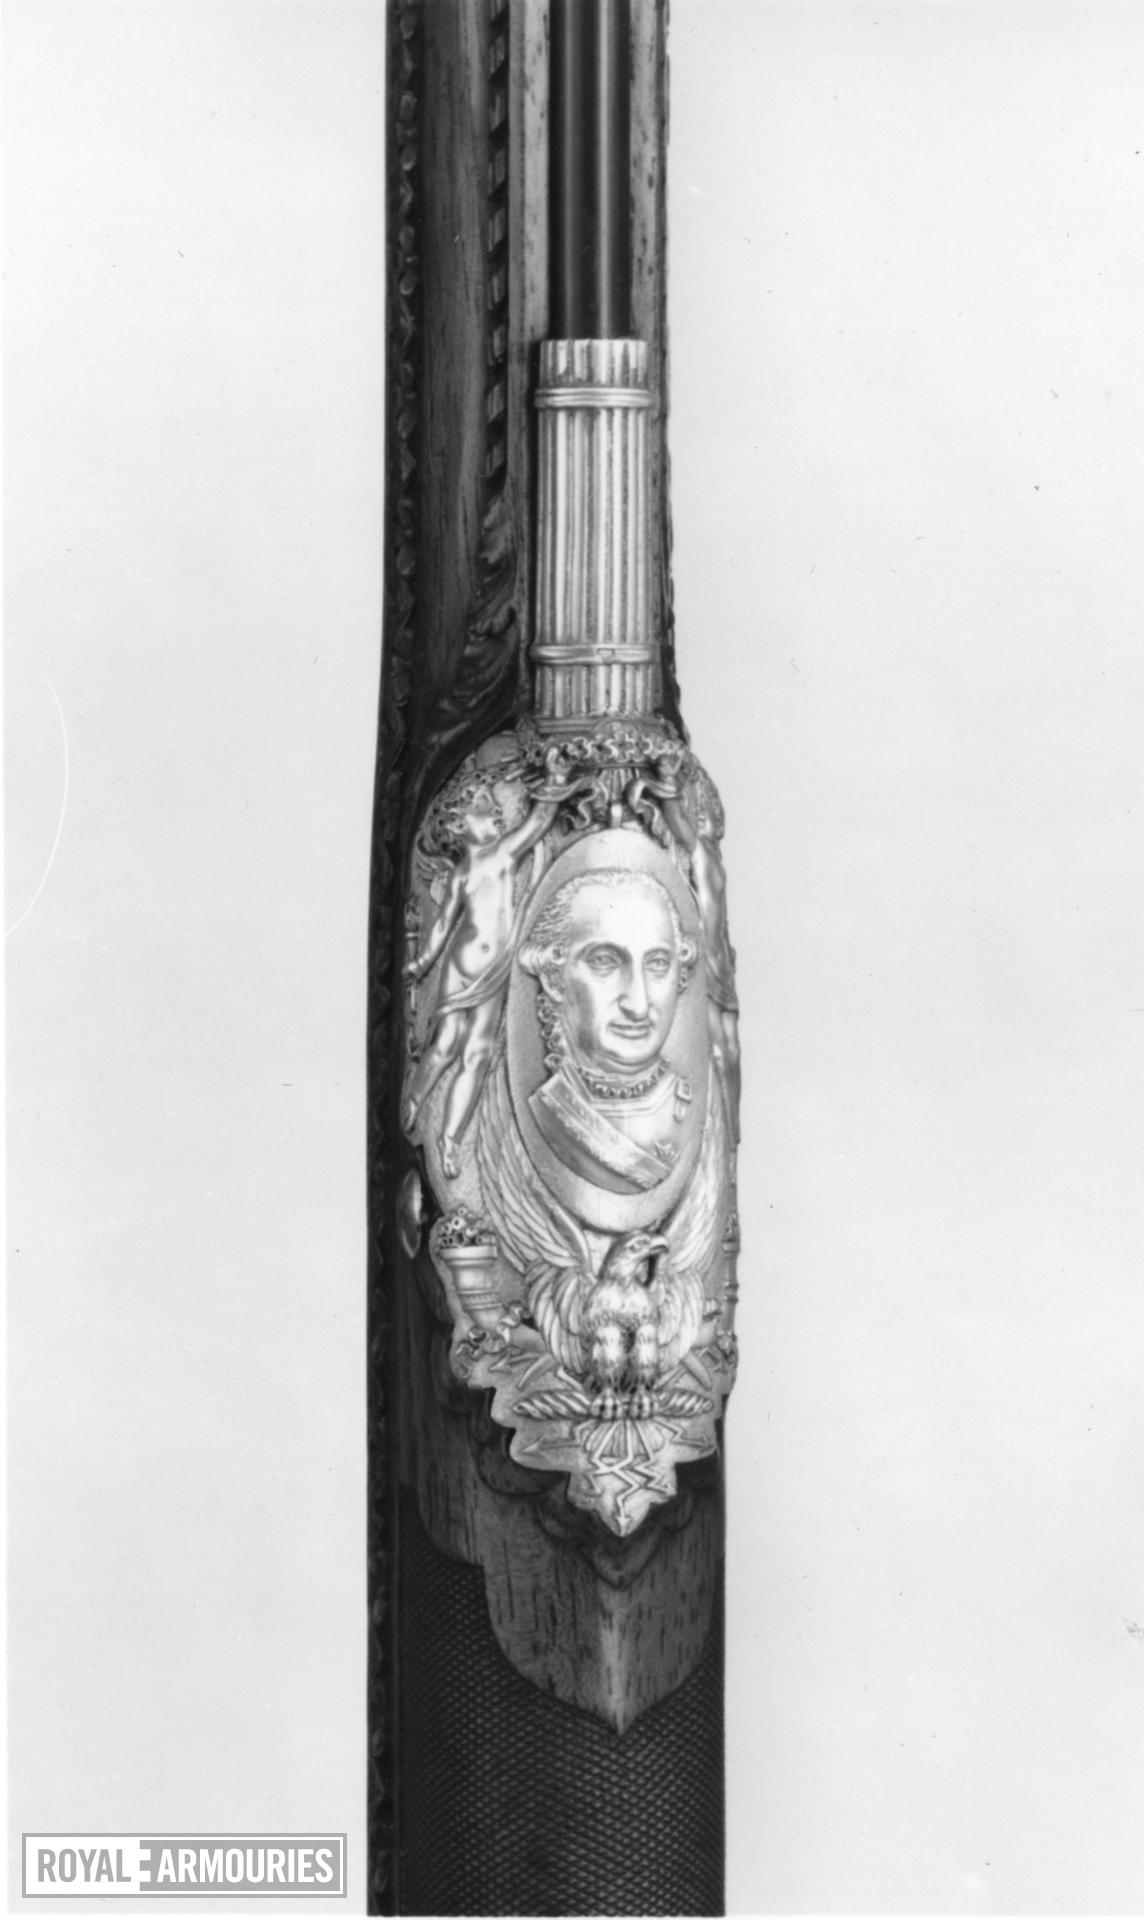 Flintlock muzzle-loading sporting gun - By Nicholas Noel Boutet Of exceptional quality, with Egyptian three-dimensional caryatid on the underside of the stock. Sent as a gift in 1802 to King Charles IV of Spain from Napoleon Bonaparte, then First Consul of France.